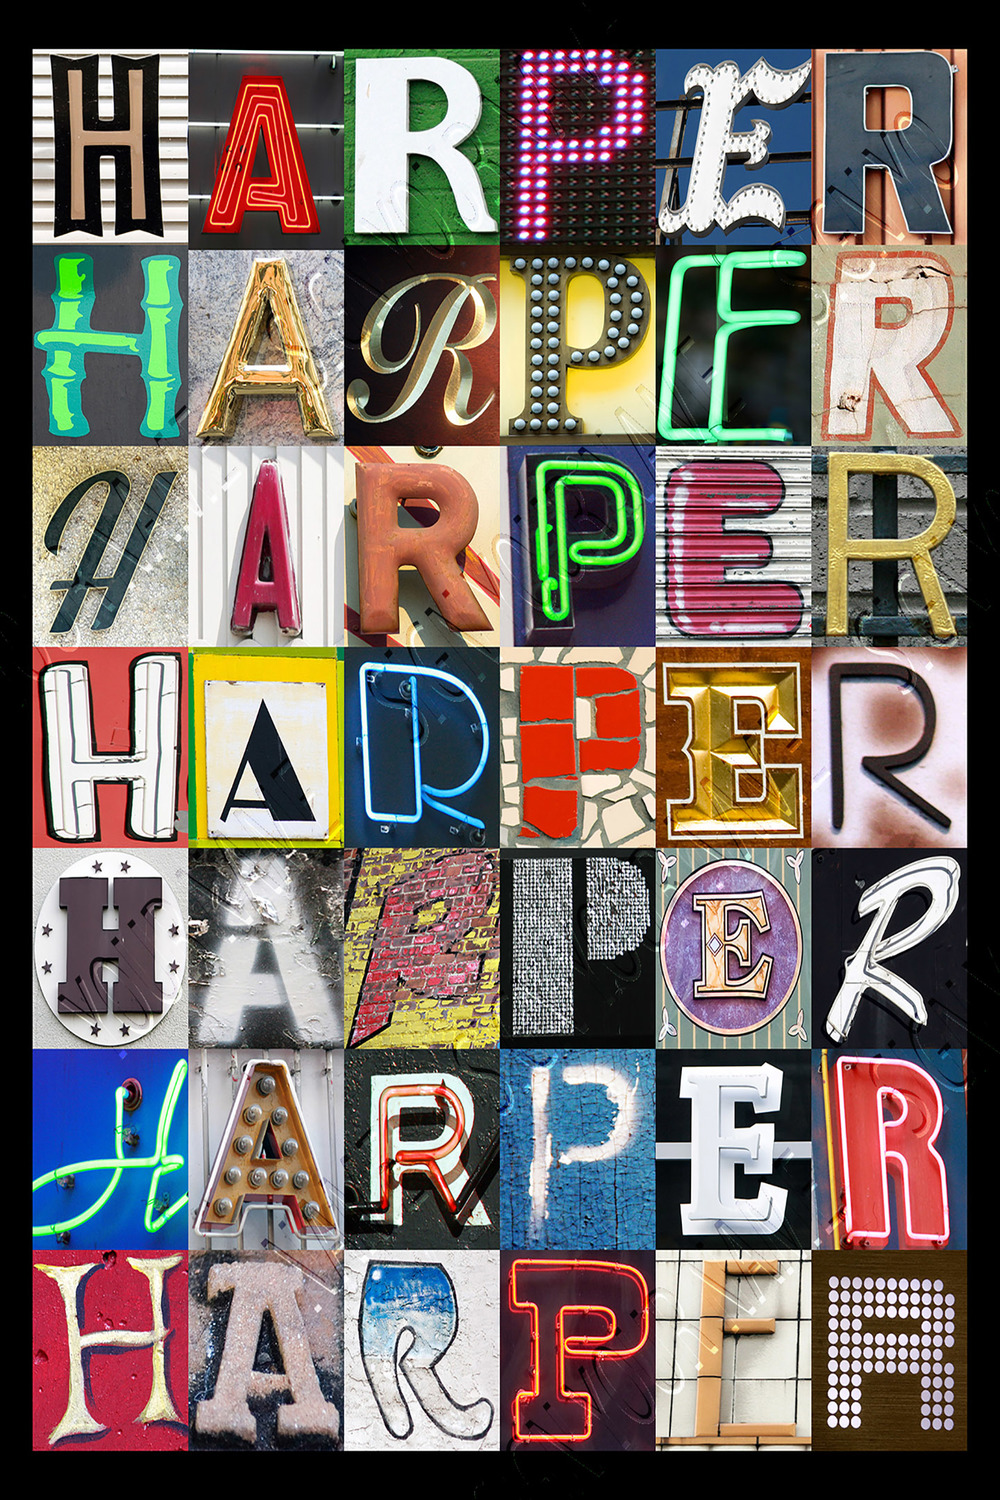 https://www.etsy.com/listing/203502865/personalized-poster-featuring-harper?ref=shop_home_active_1&ga_search_query=Harper